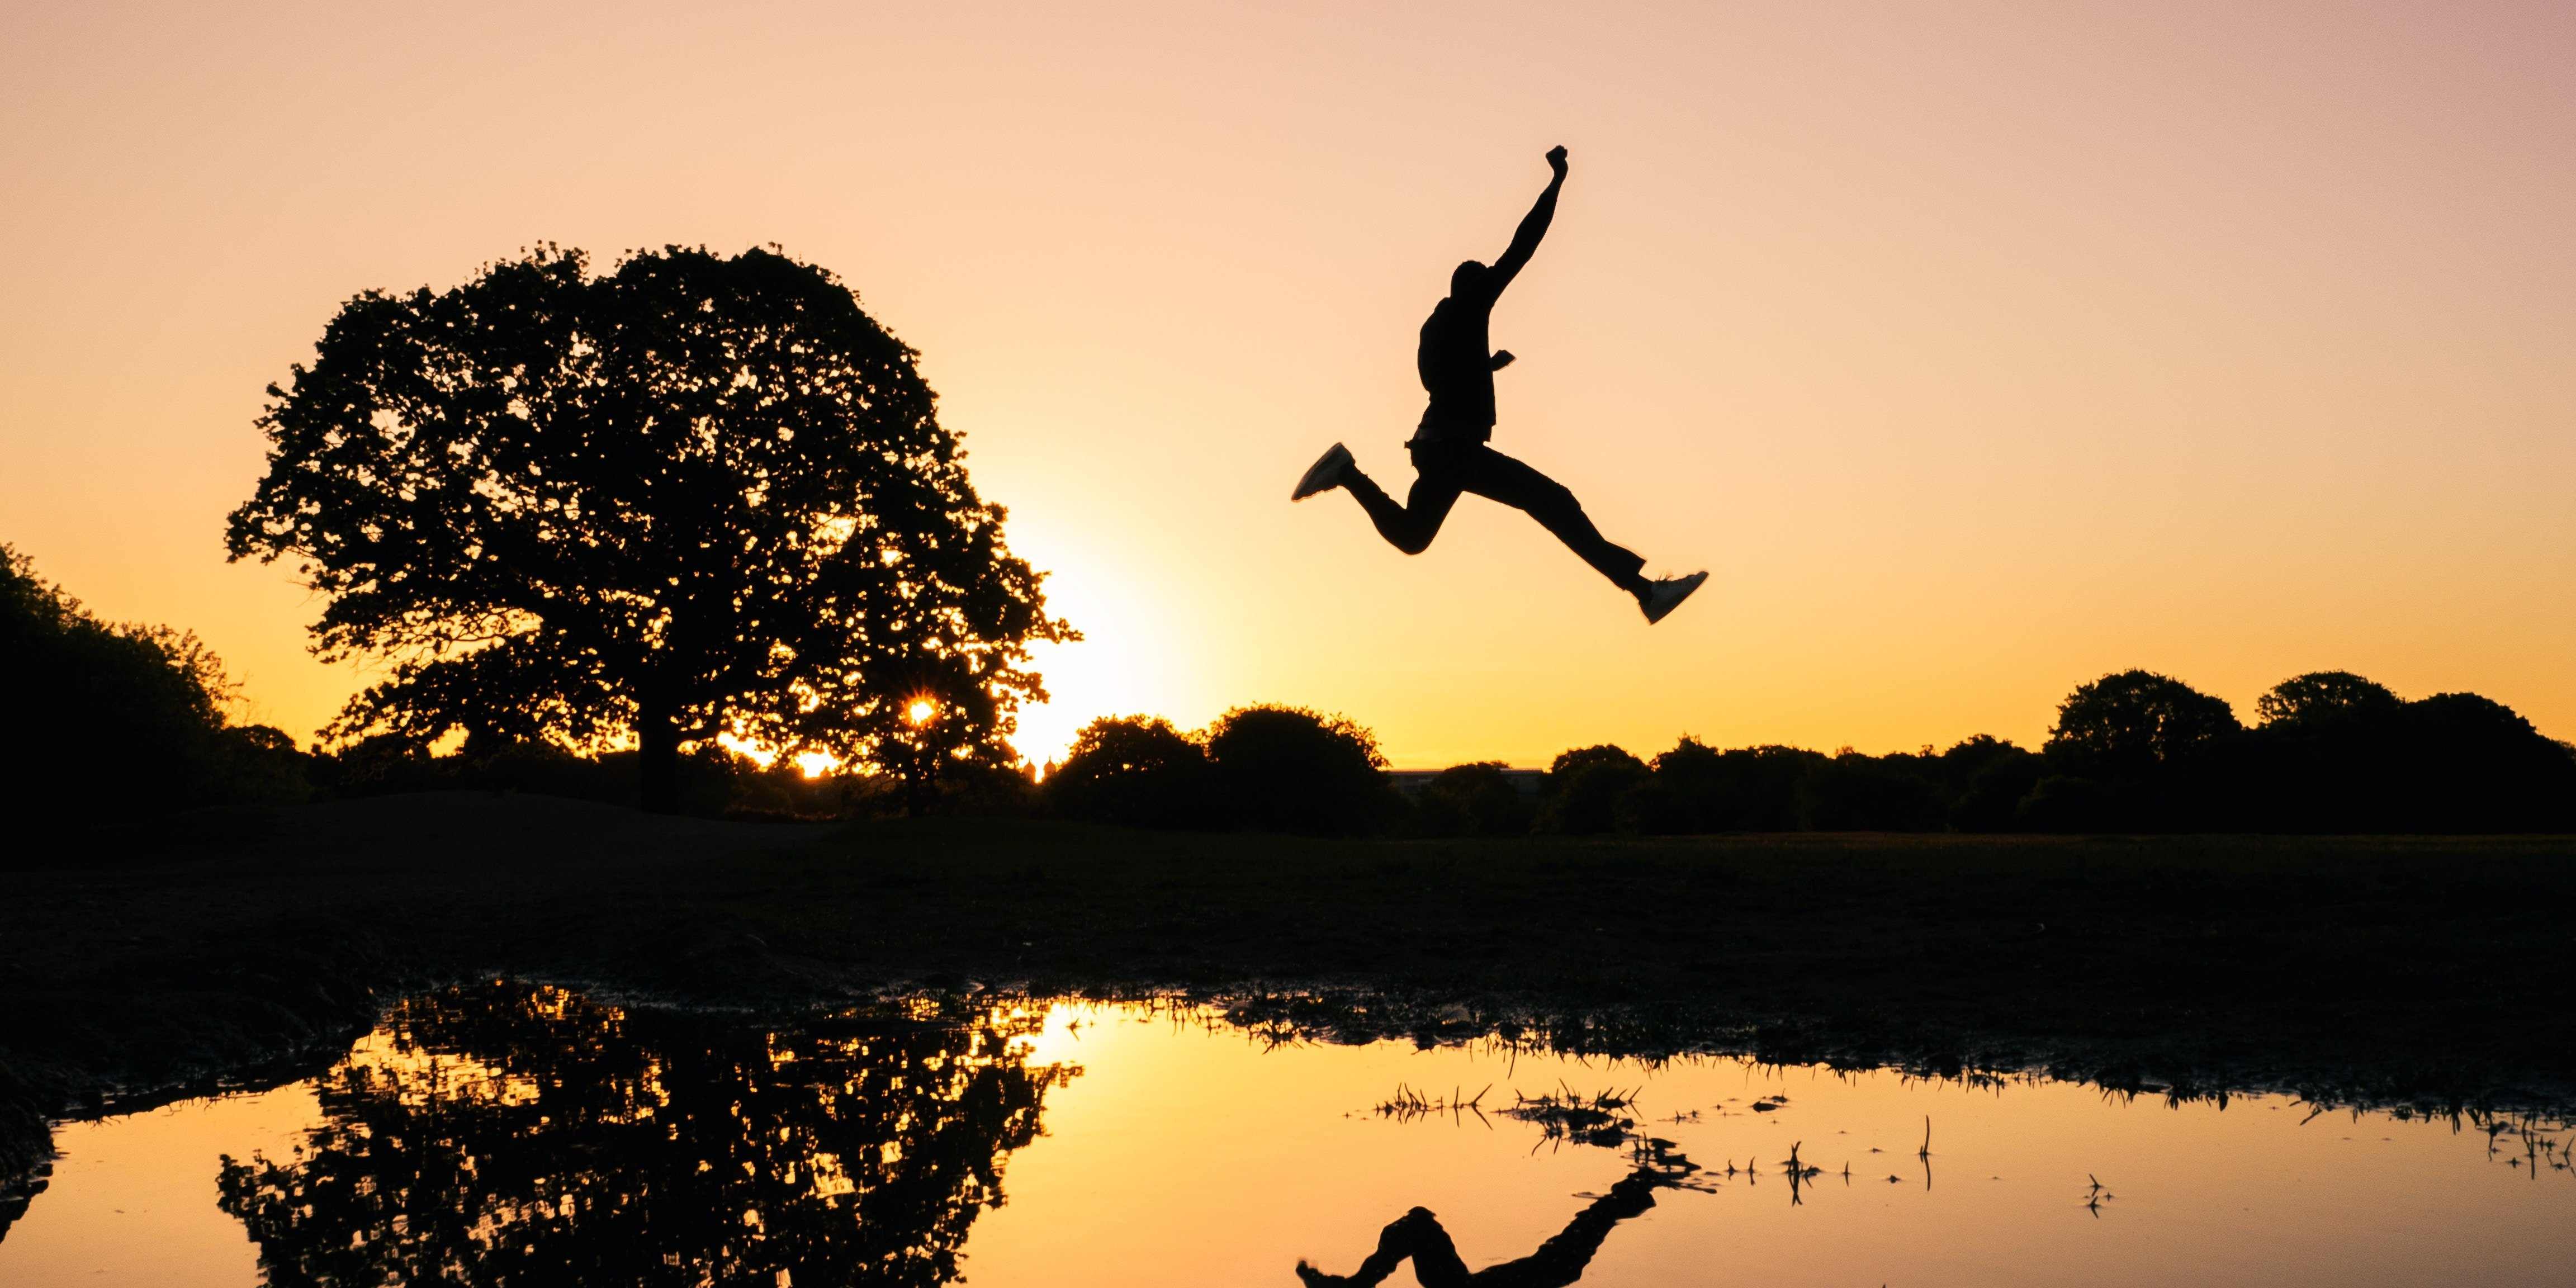 Silhouette of person jumping over water as sun sets